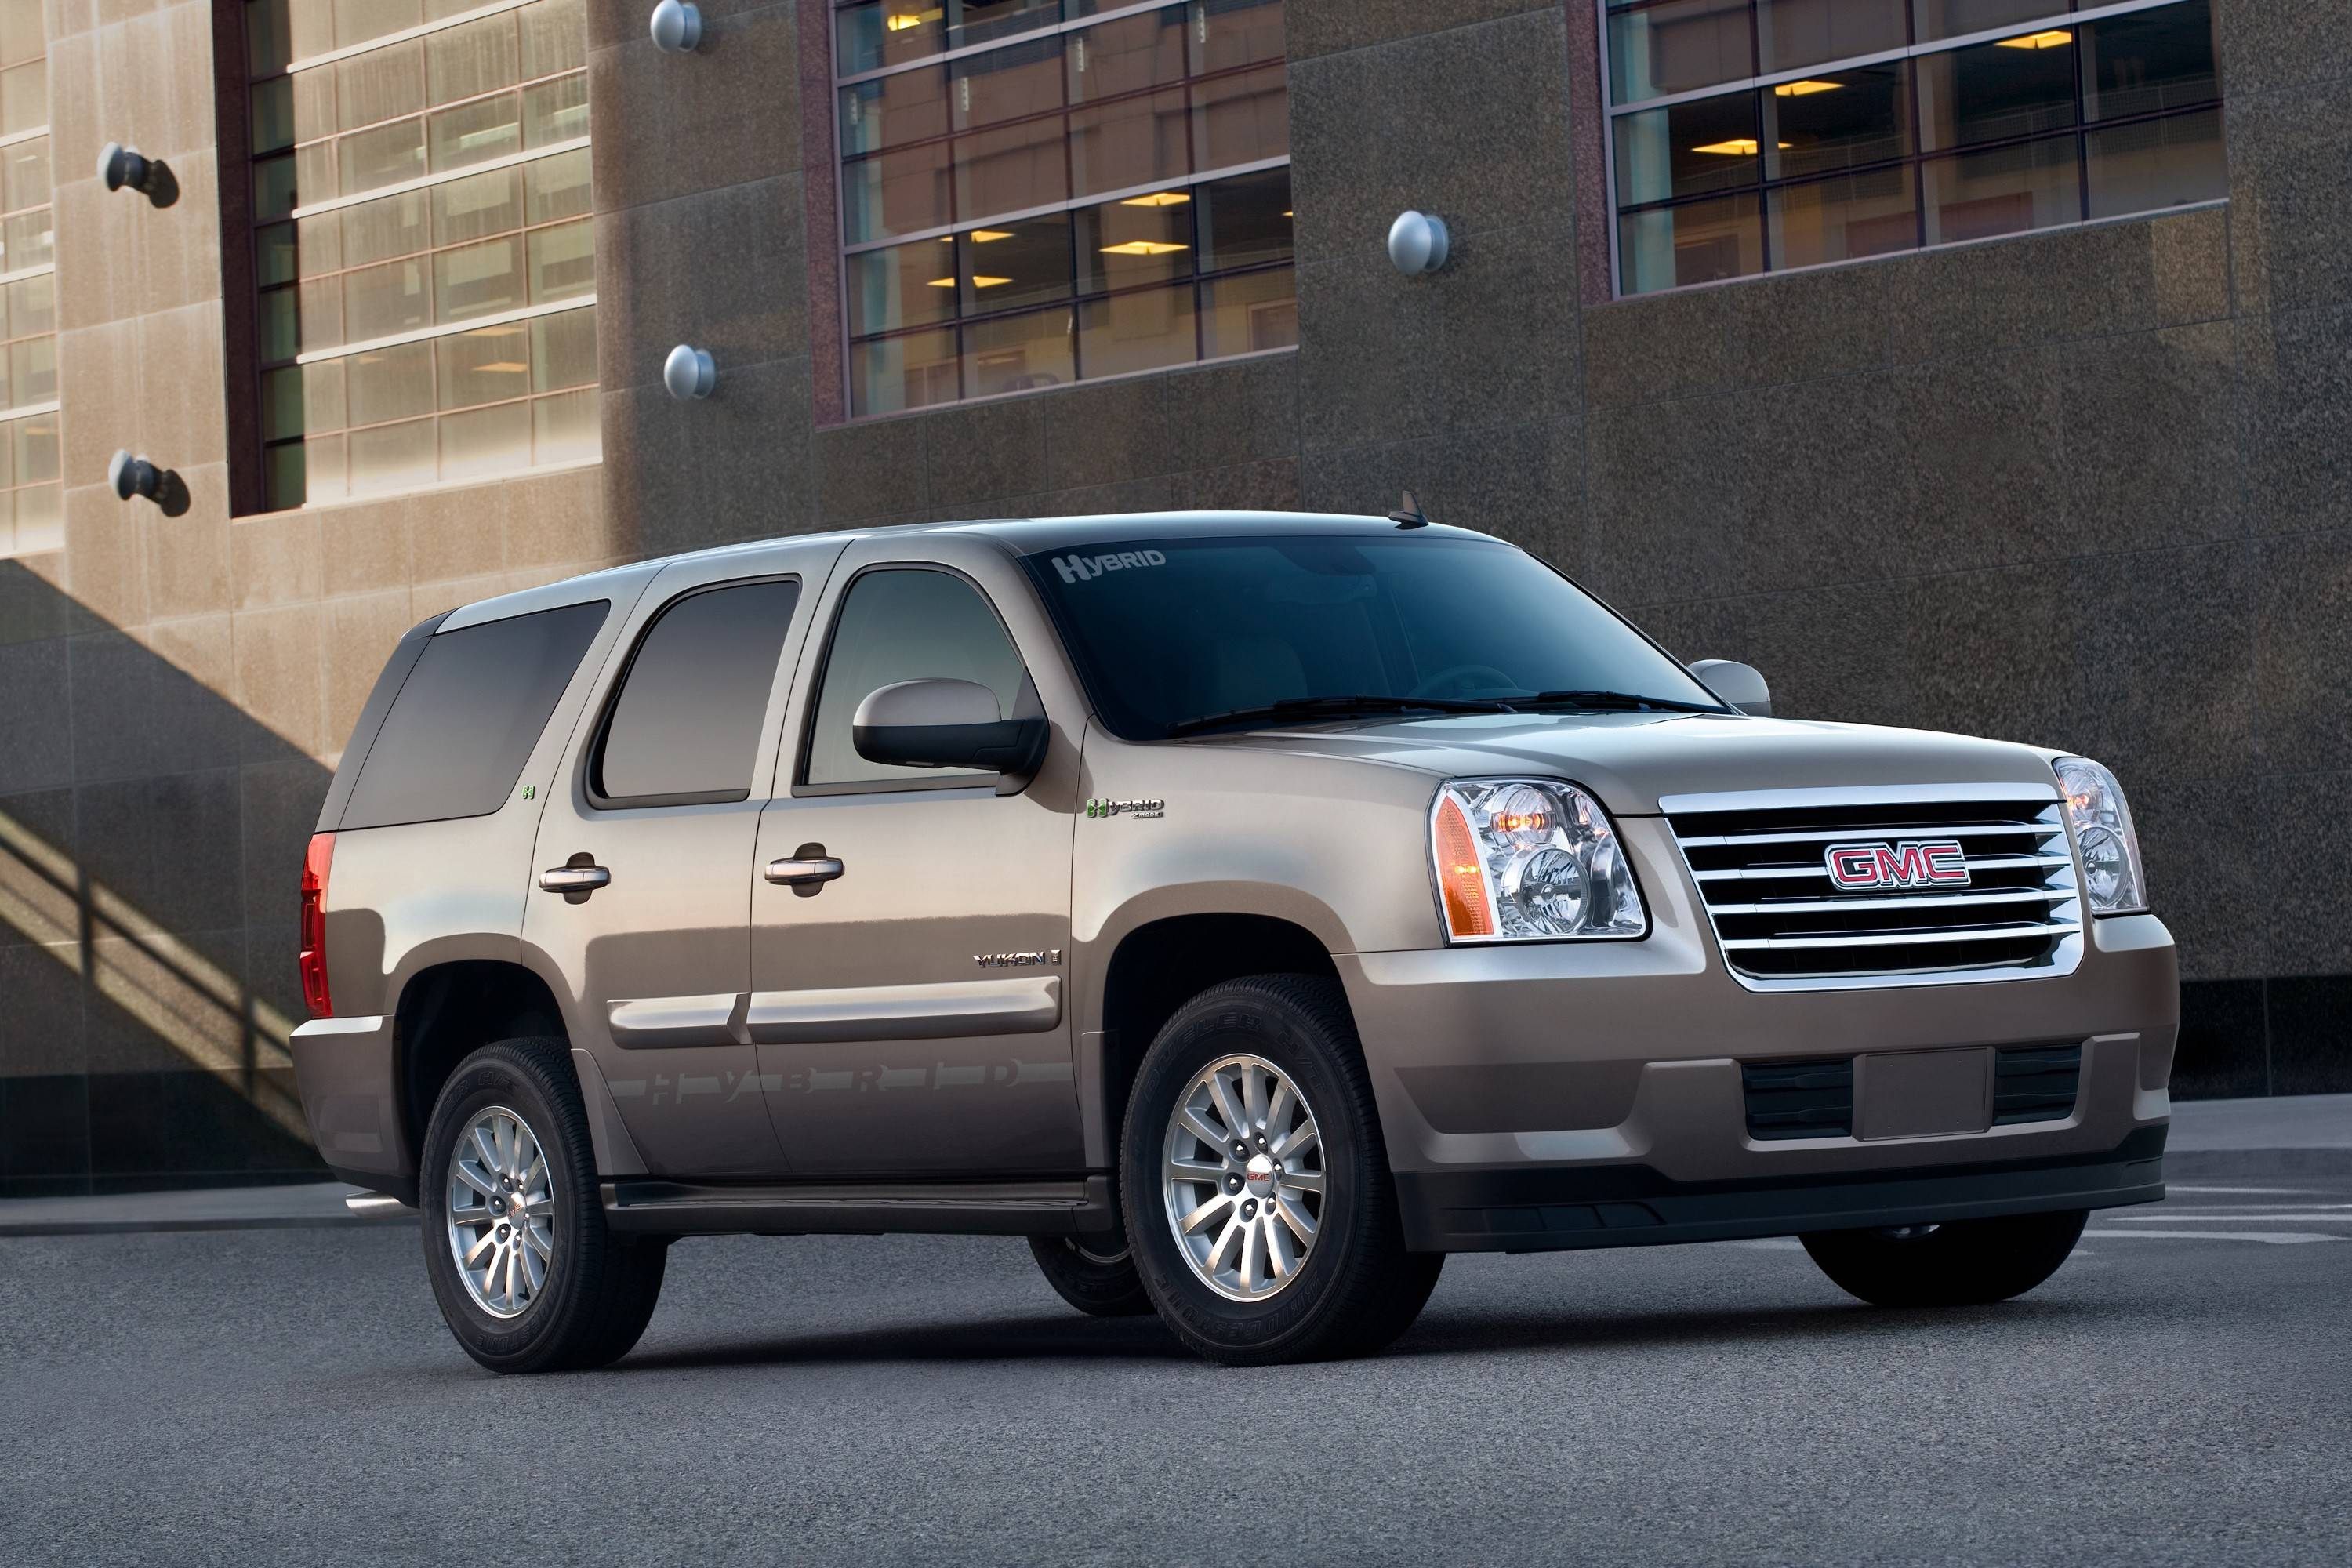 @*@*ADVANCE FOR WEDNESDAY FEB. 6@*@* In this photo released by GMC shows the 2008 GMC Yukon Hybrid. (AP Photo/GMC)